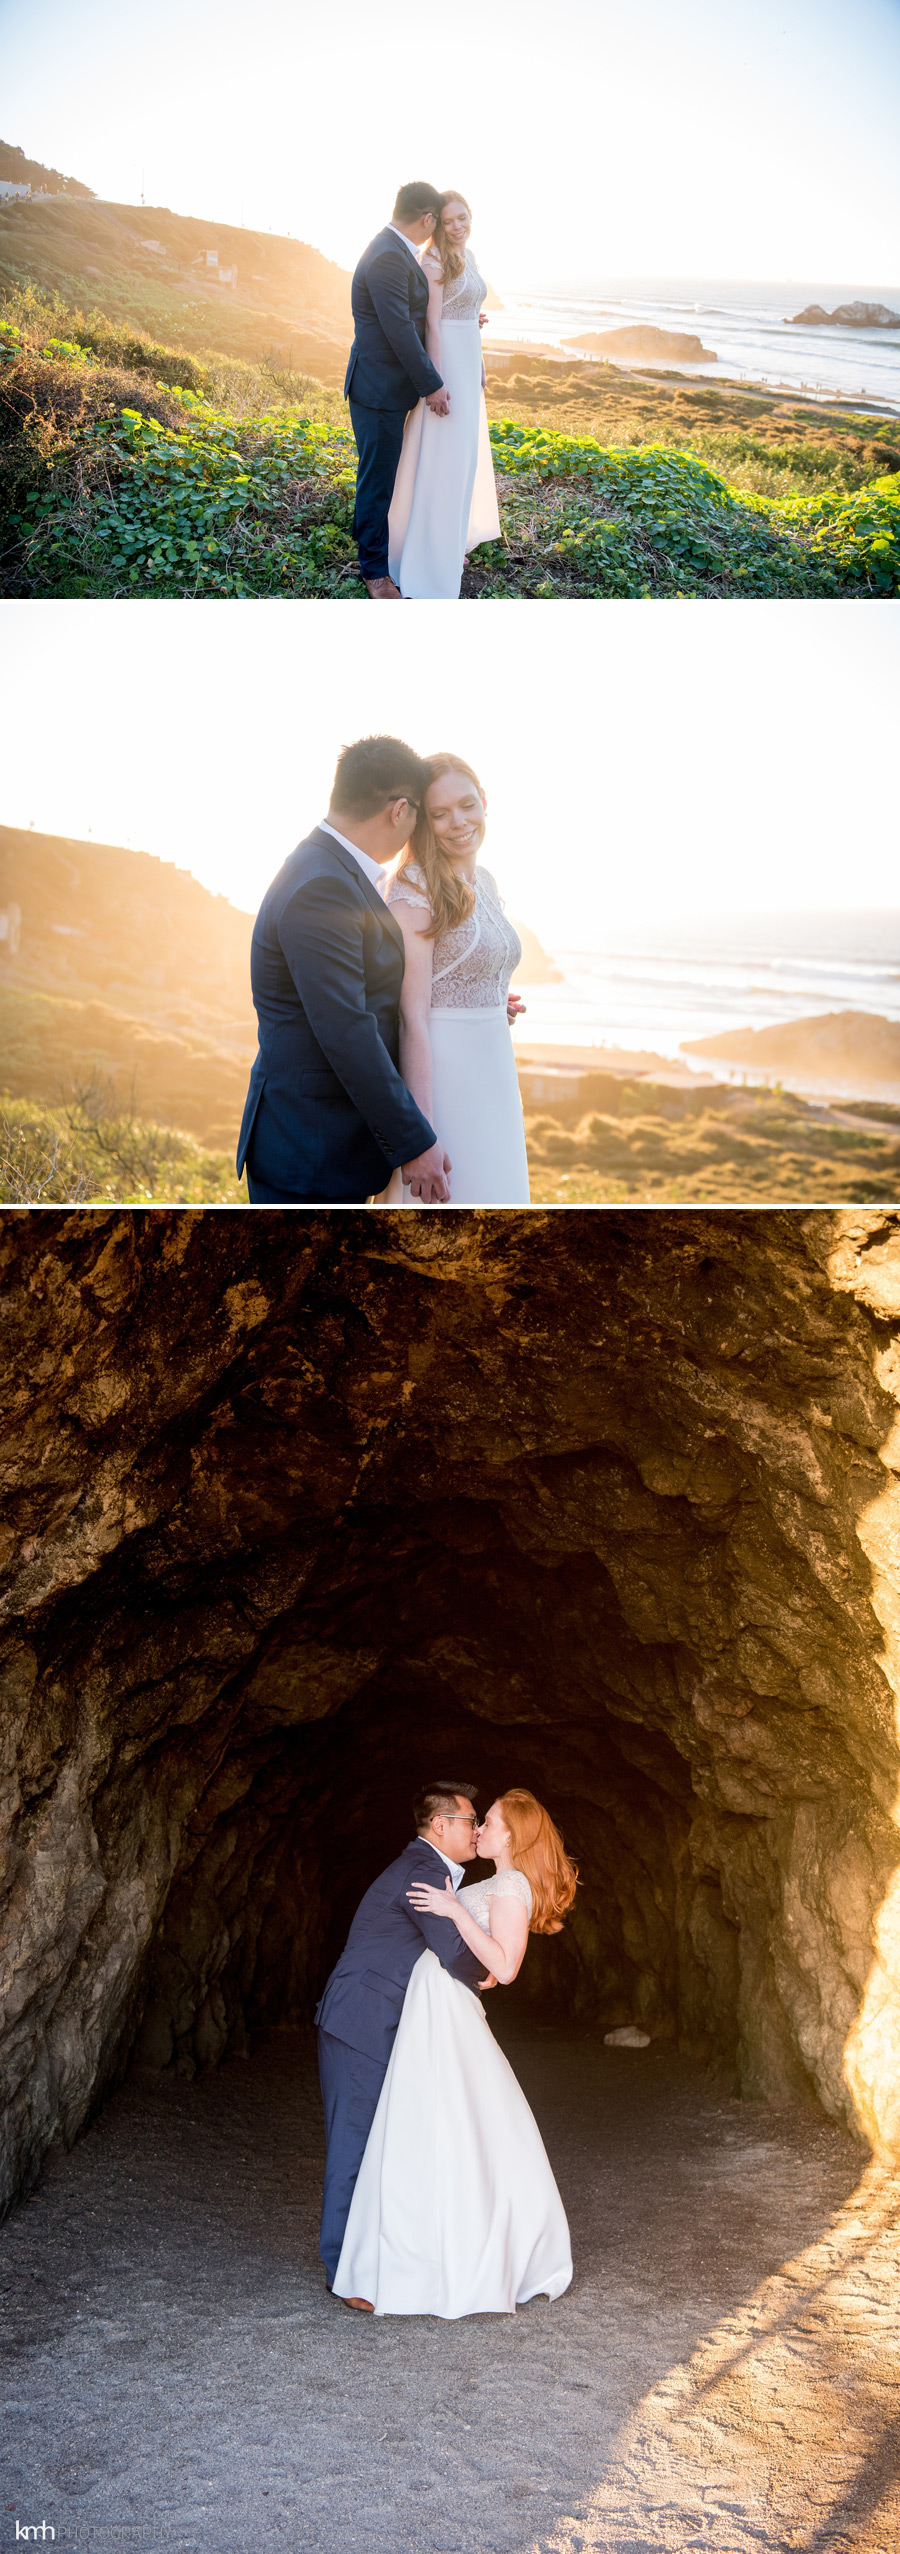 San Francisco Engagement Session at Sutro Baths | KMH Photography, Las Vegas + Destination Wedding Photographer